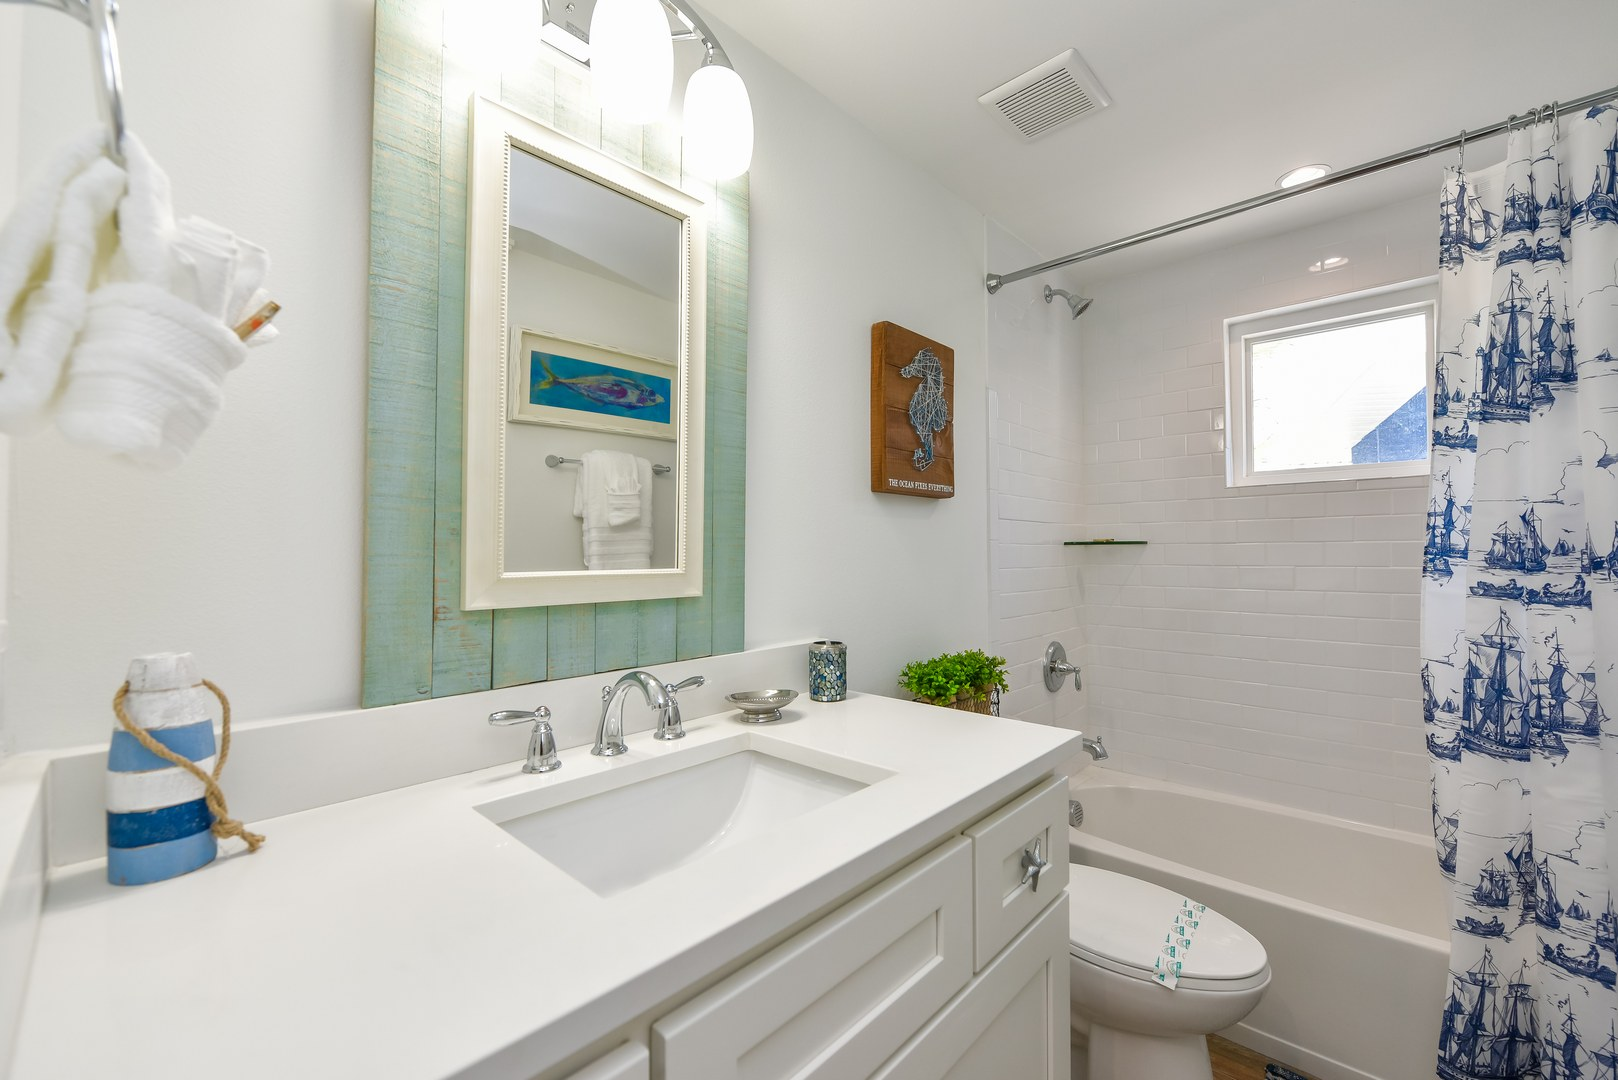 EXAMPLE - Private Bath 2 - Shower/Tub combo